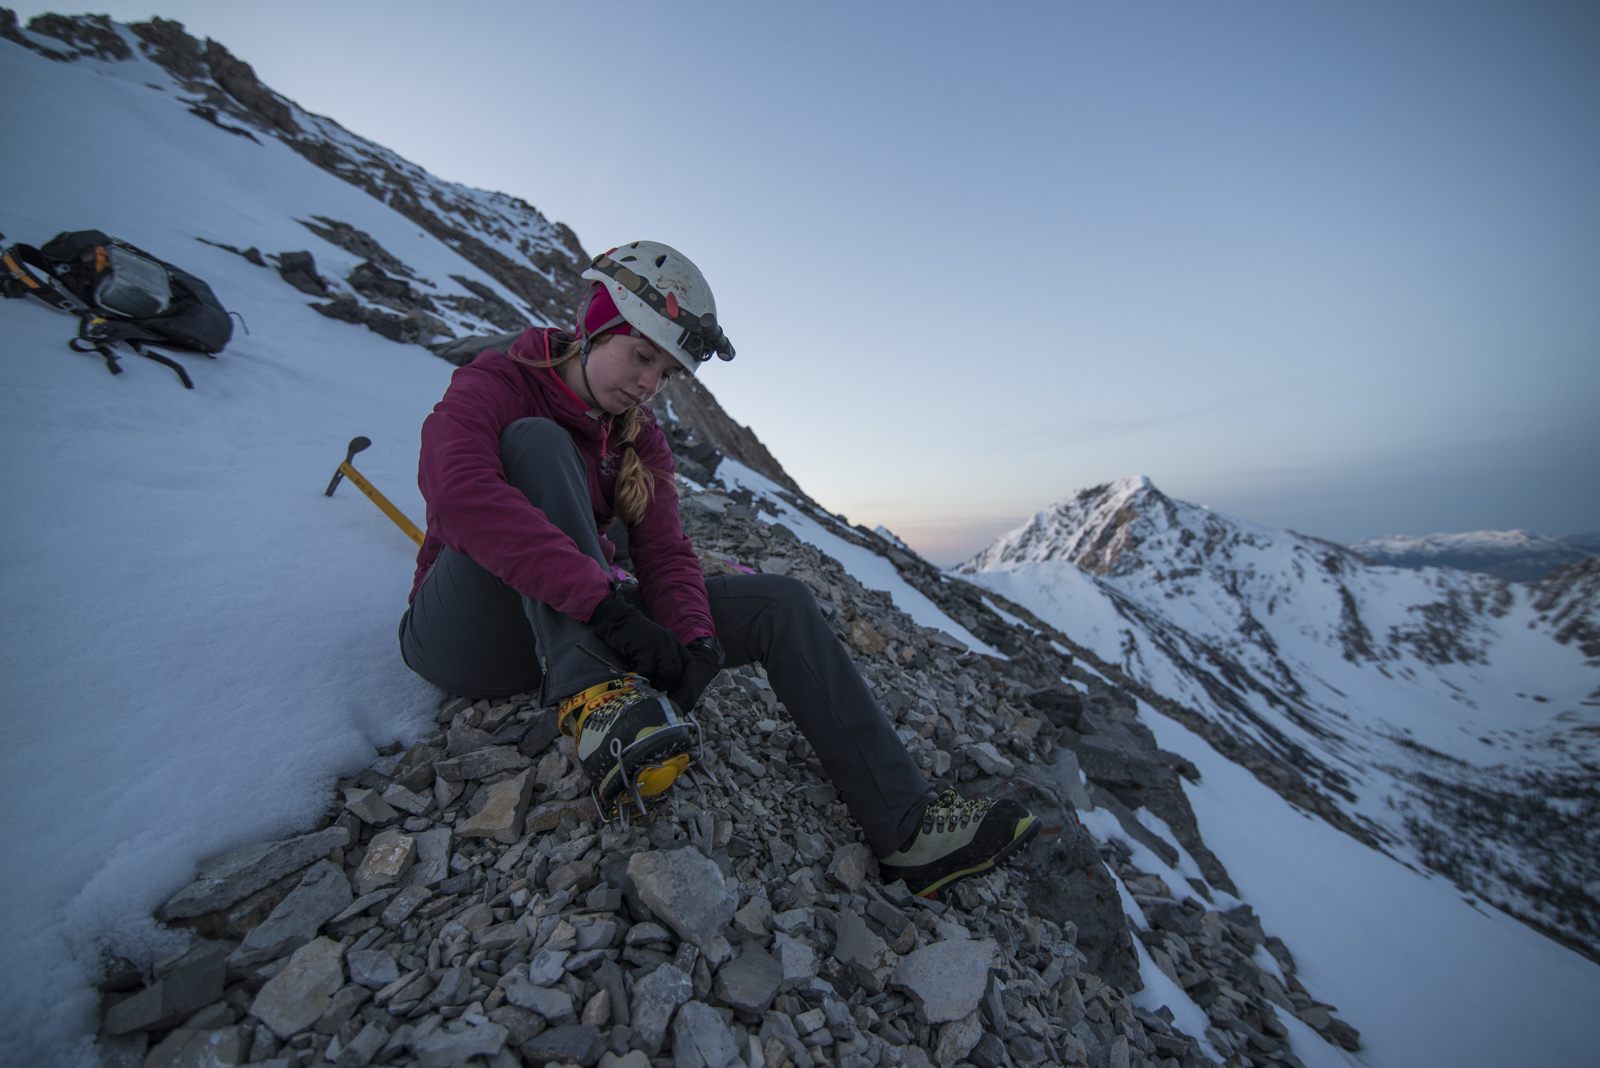 Megan putting her crampons on before the first snow field on Borah Peak.